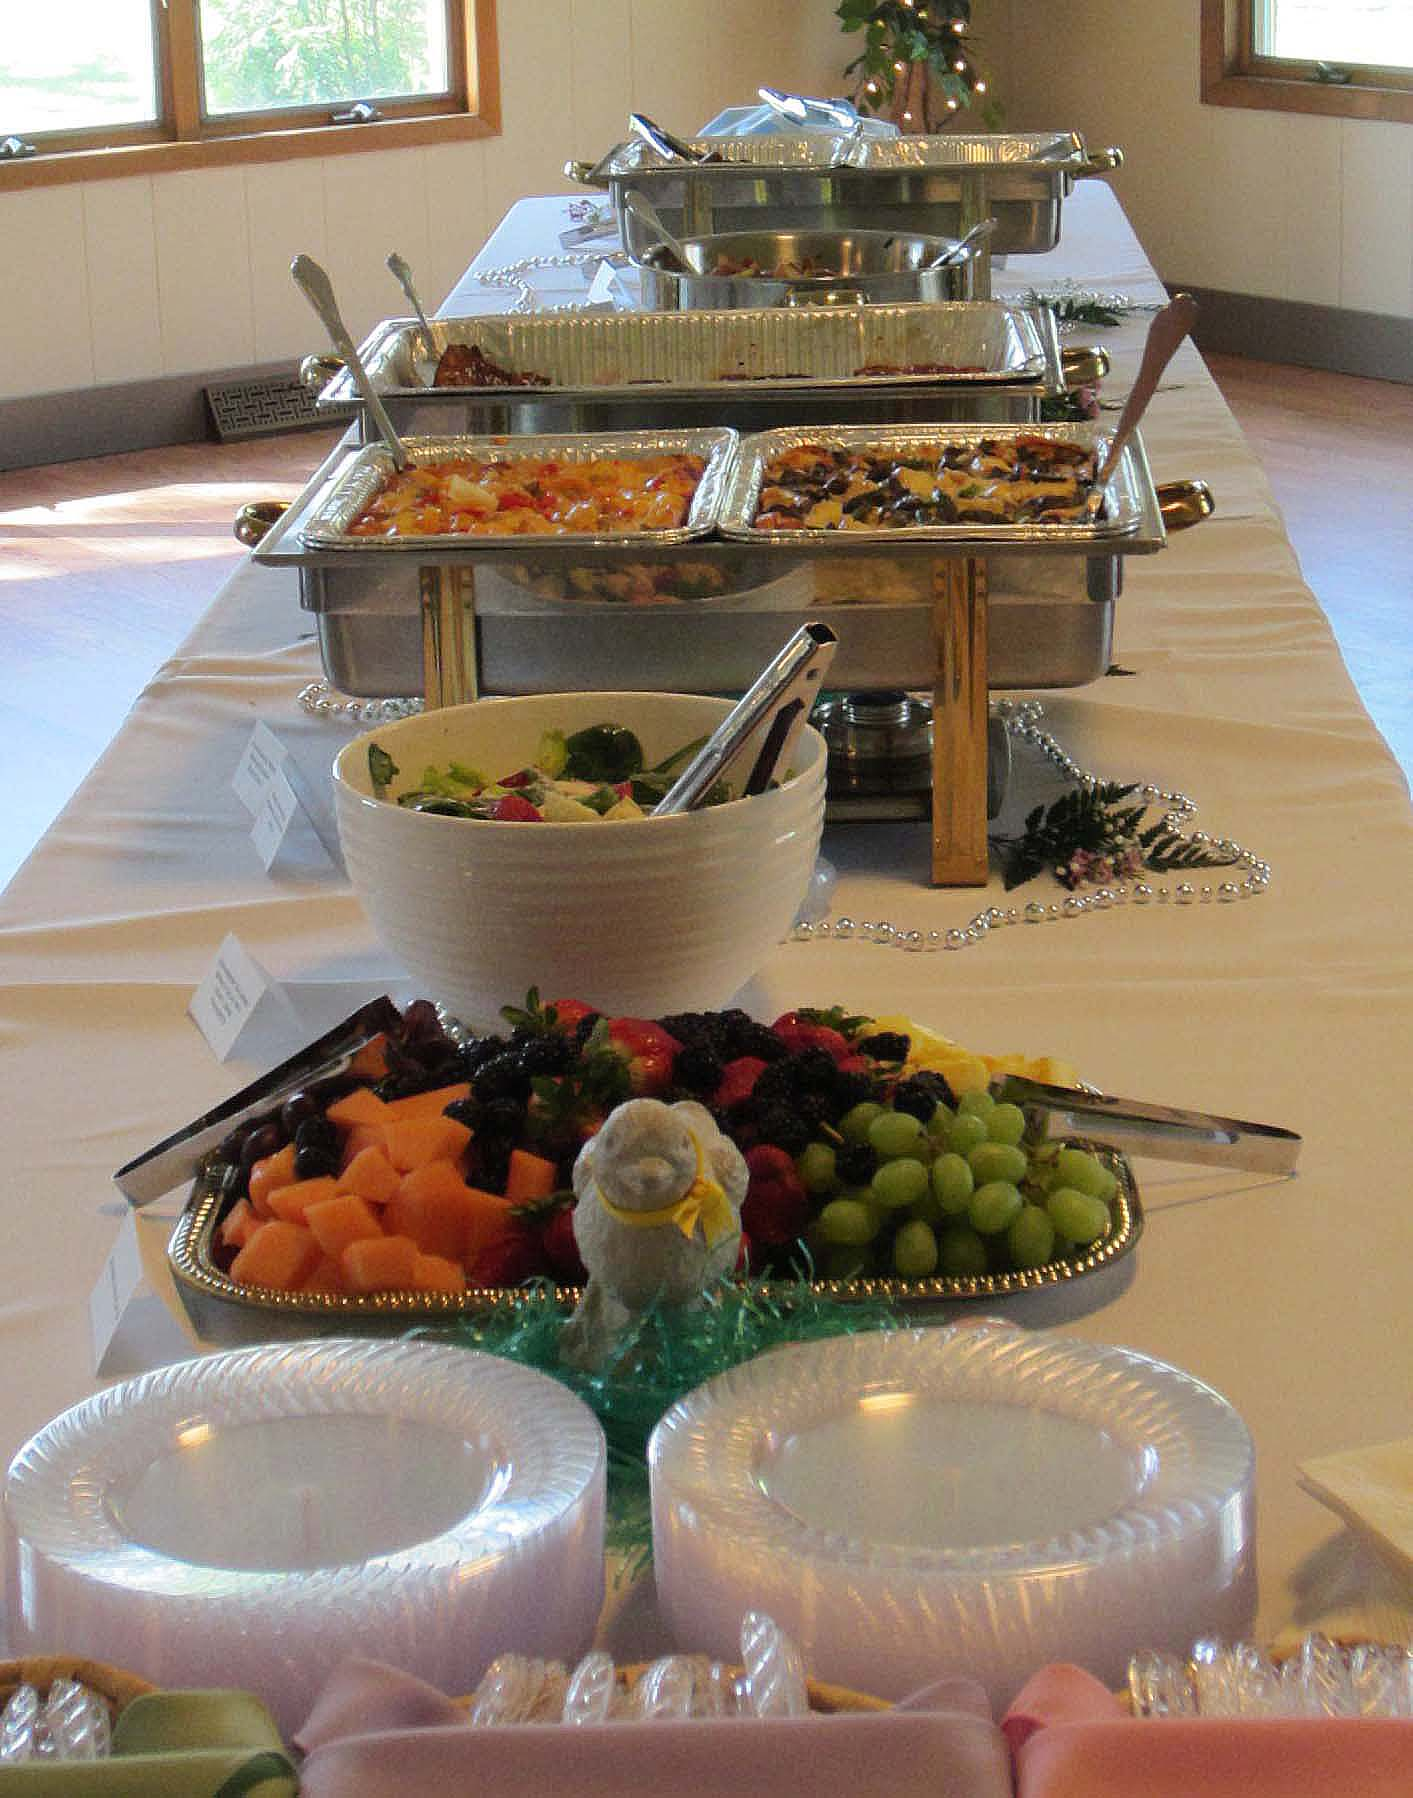 Wesley S Catering For Chelsea Michigan Catering Dexter